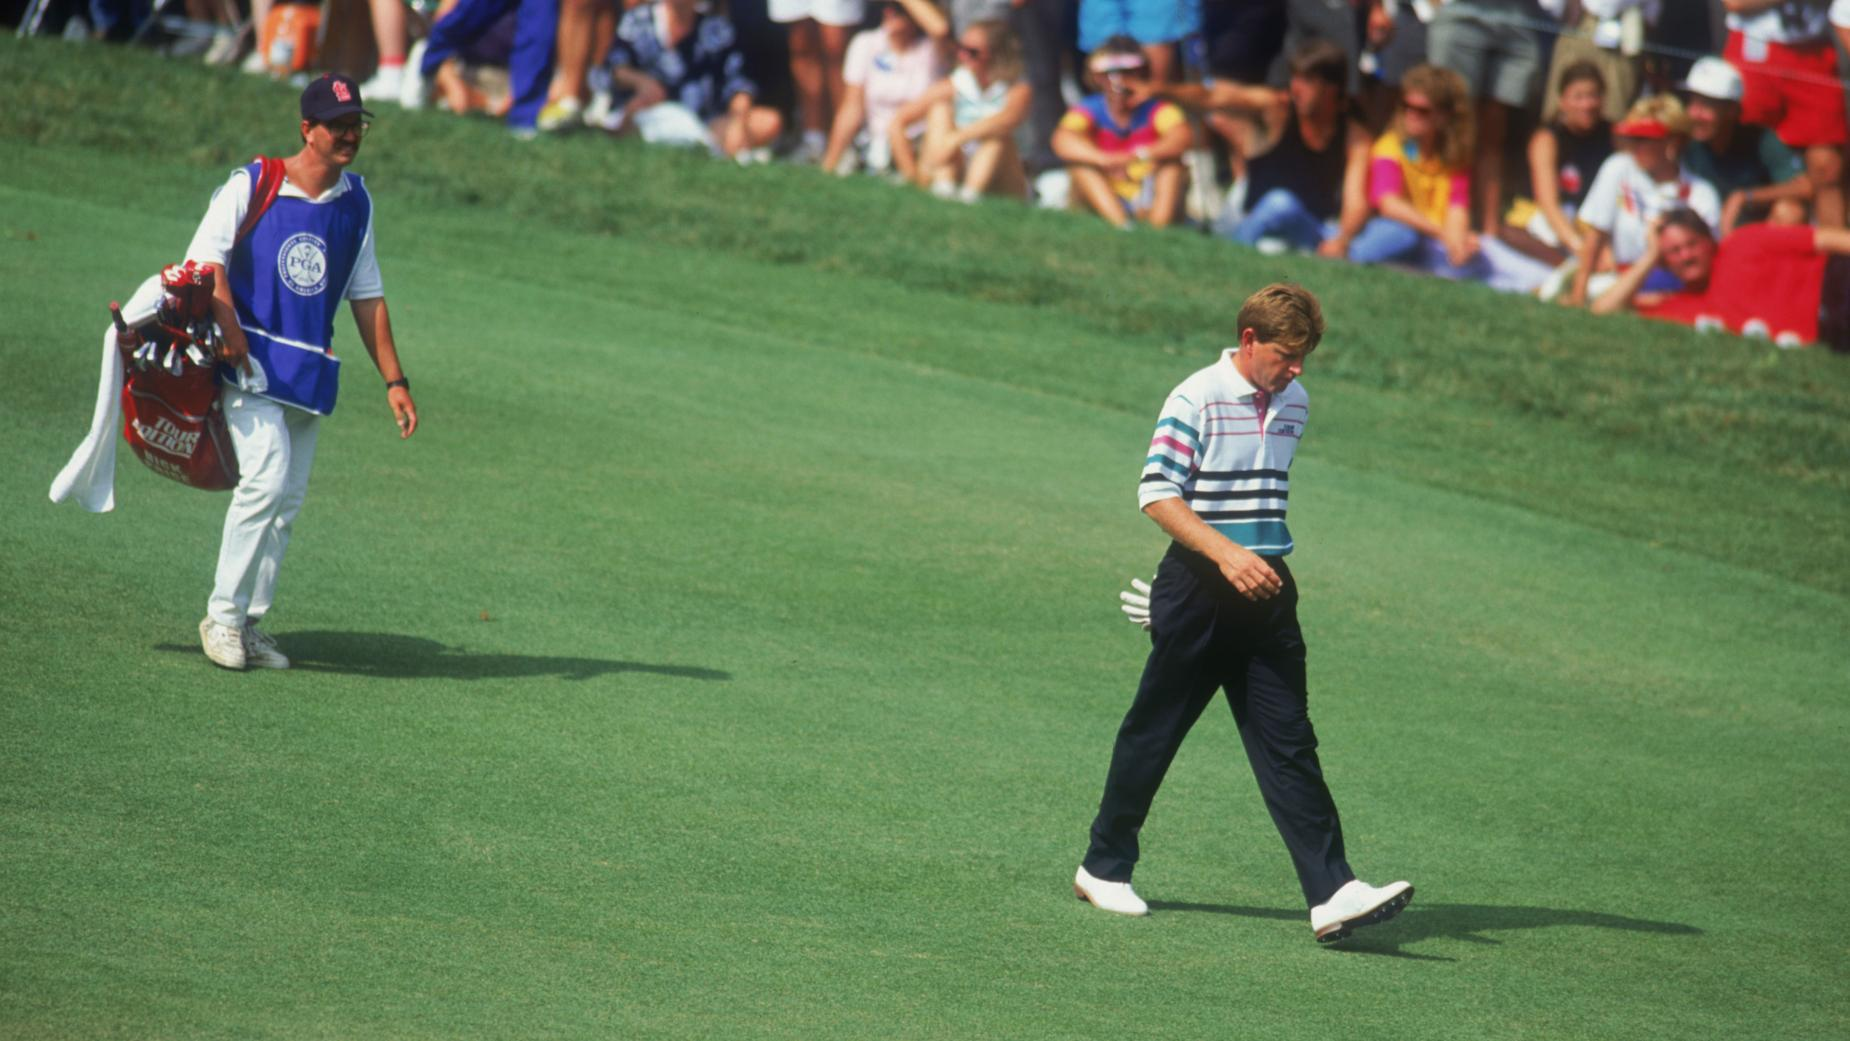 nick-price-1992-pga-championship-bellerive-walking.jpg